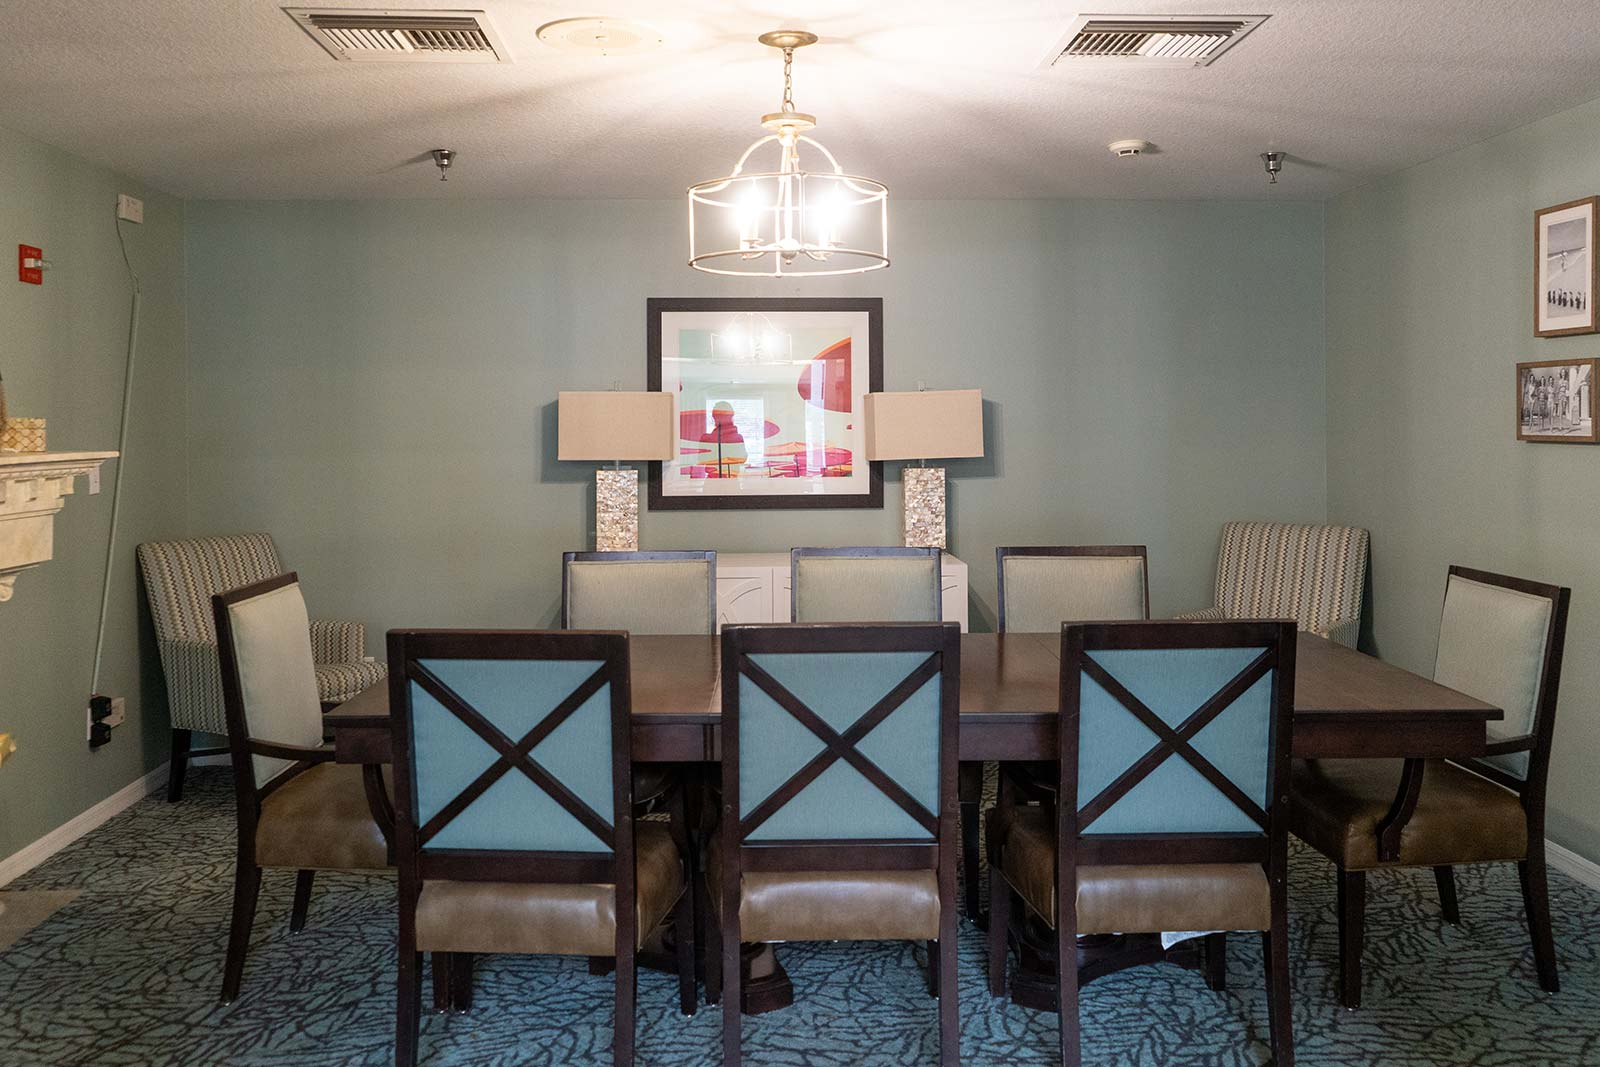 Private dining room at Heron House assisted living and memory care community in Sarasota, FL